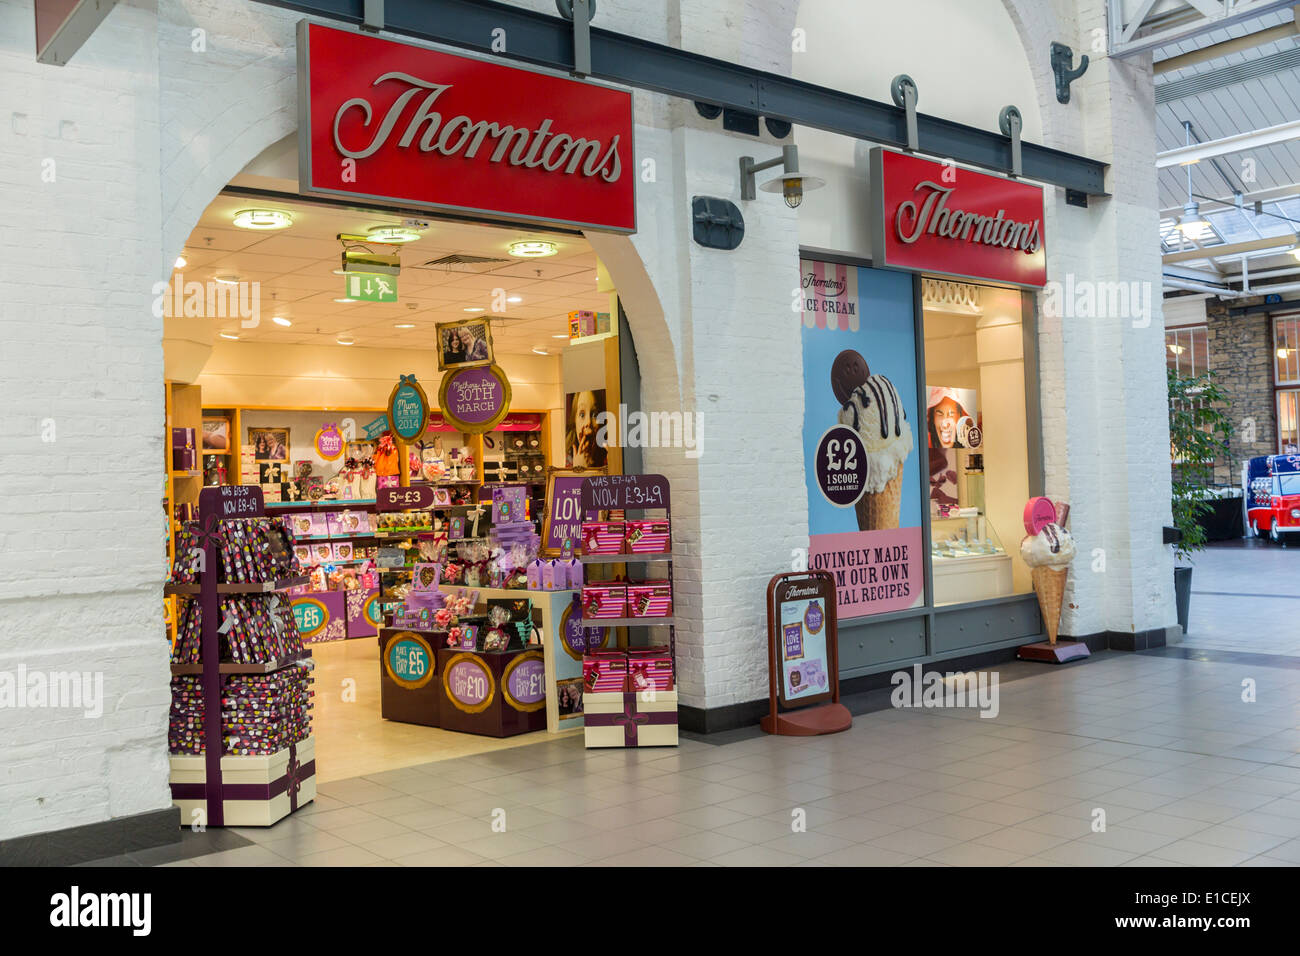 Thorntons Chocolate shop indoors - Stock Image